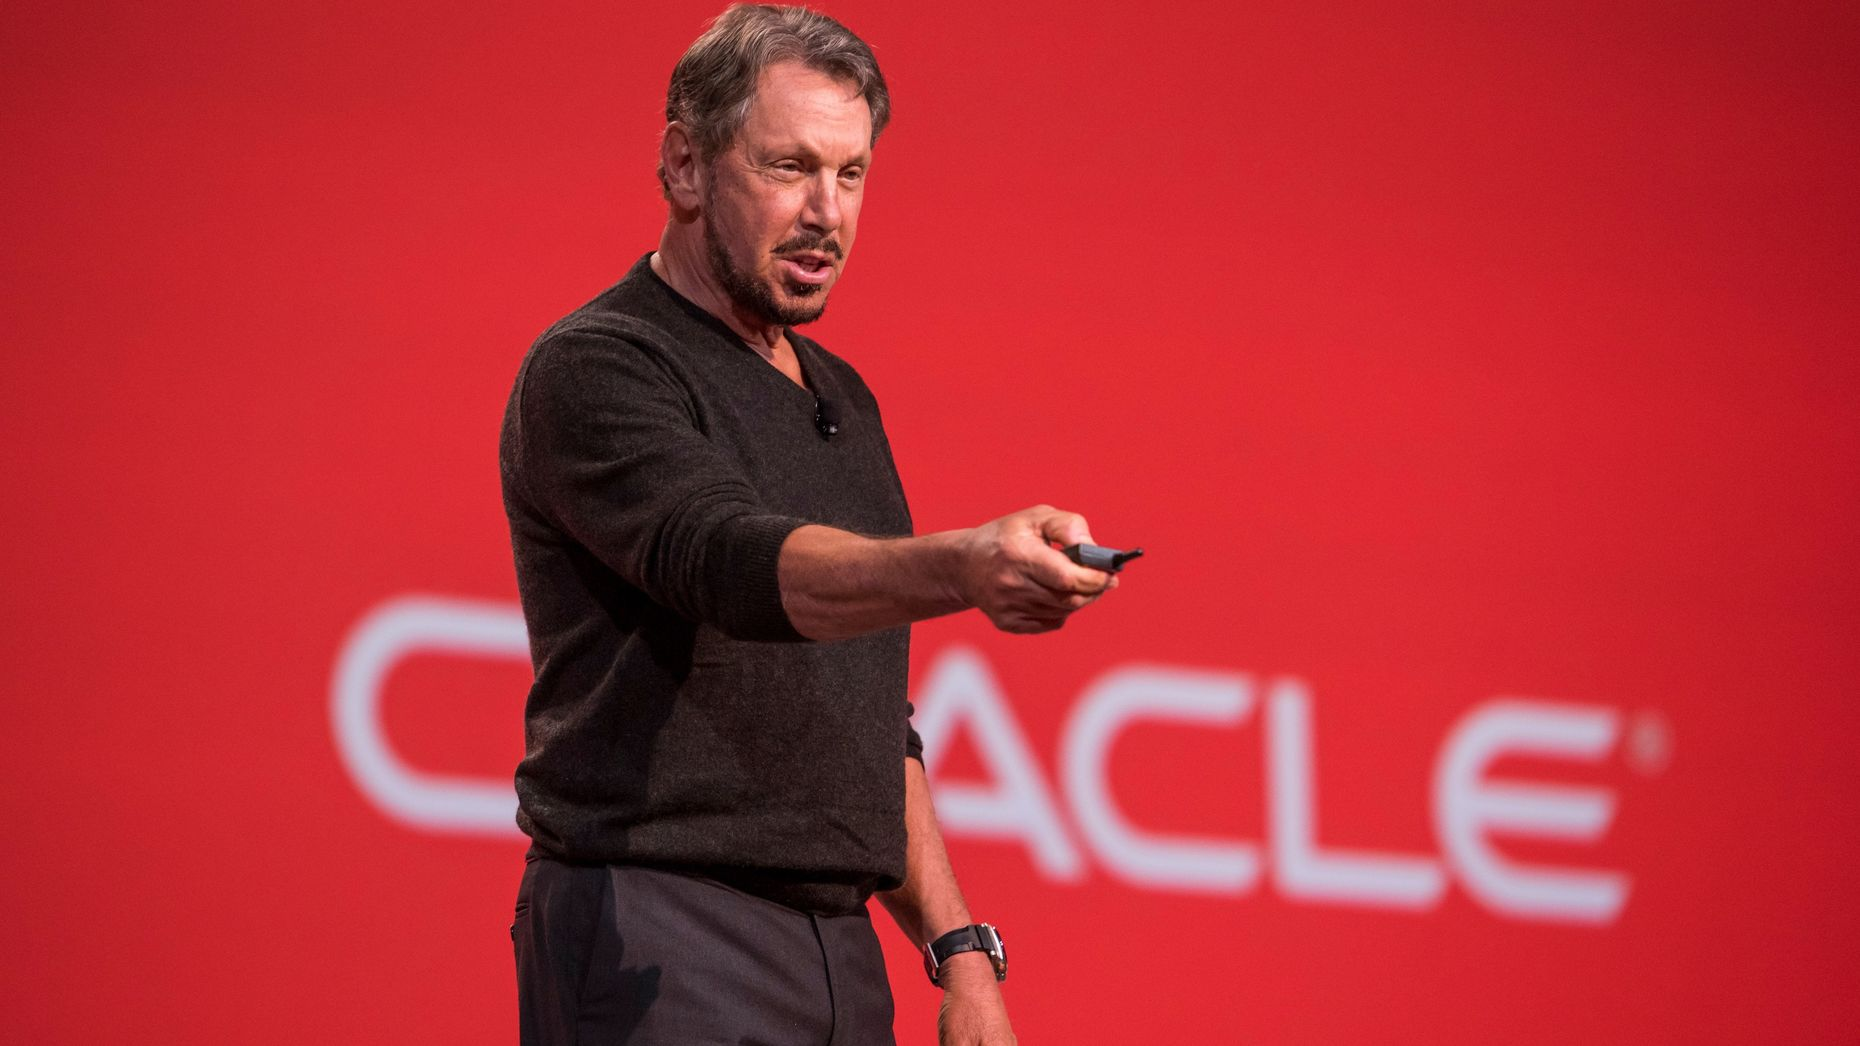 Oracle executive chairman Larry Ellison. Photo by Bloomberg.